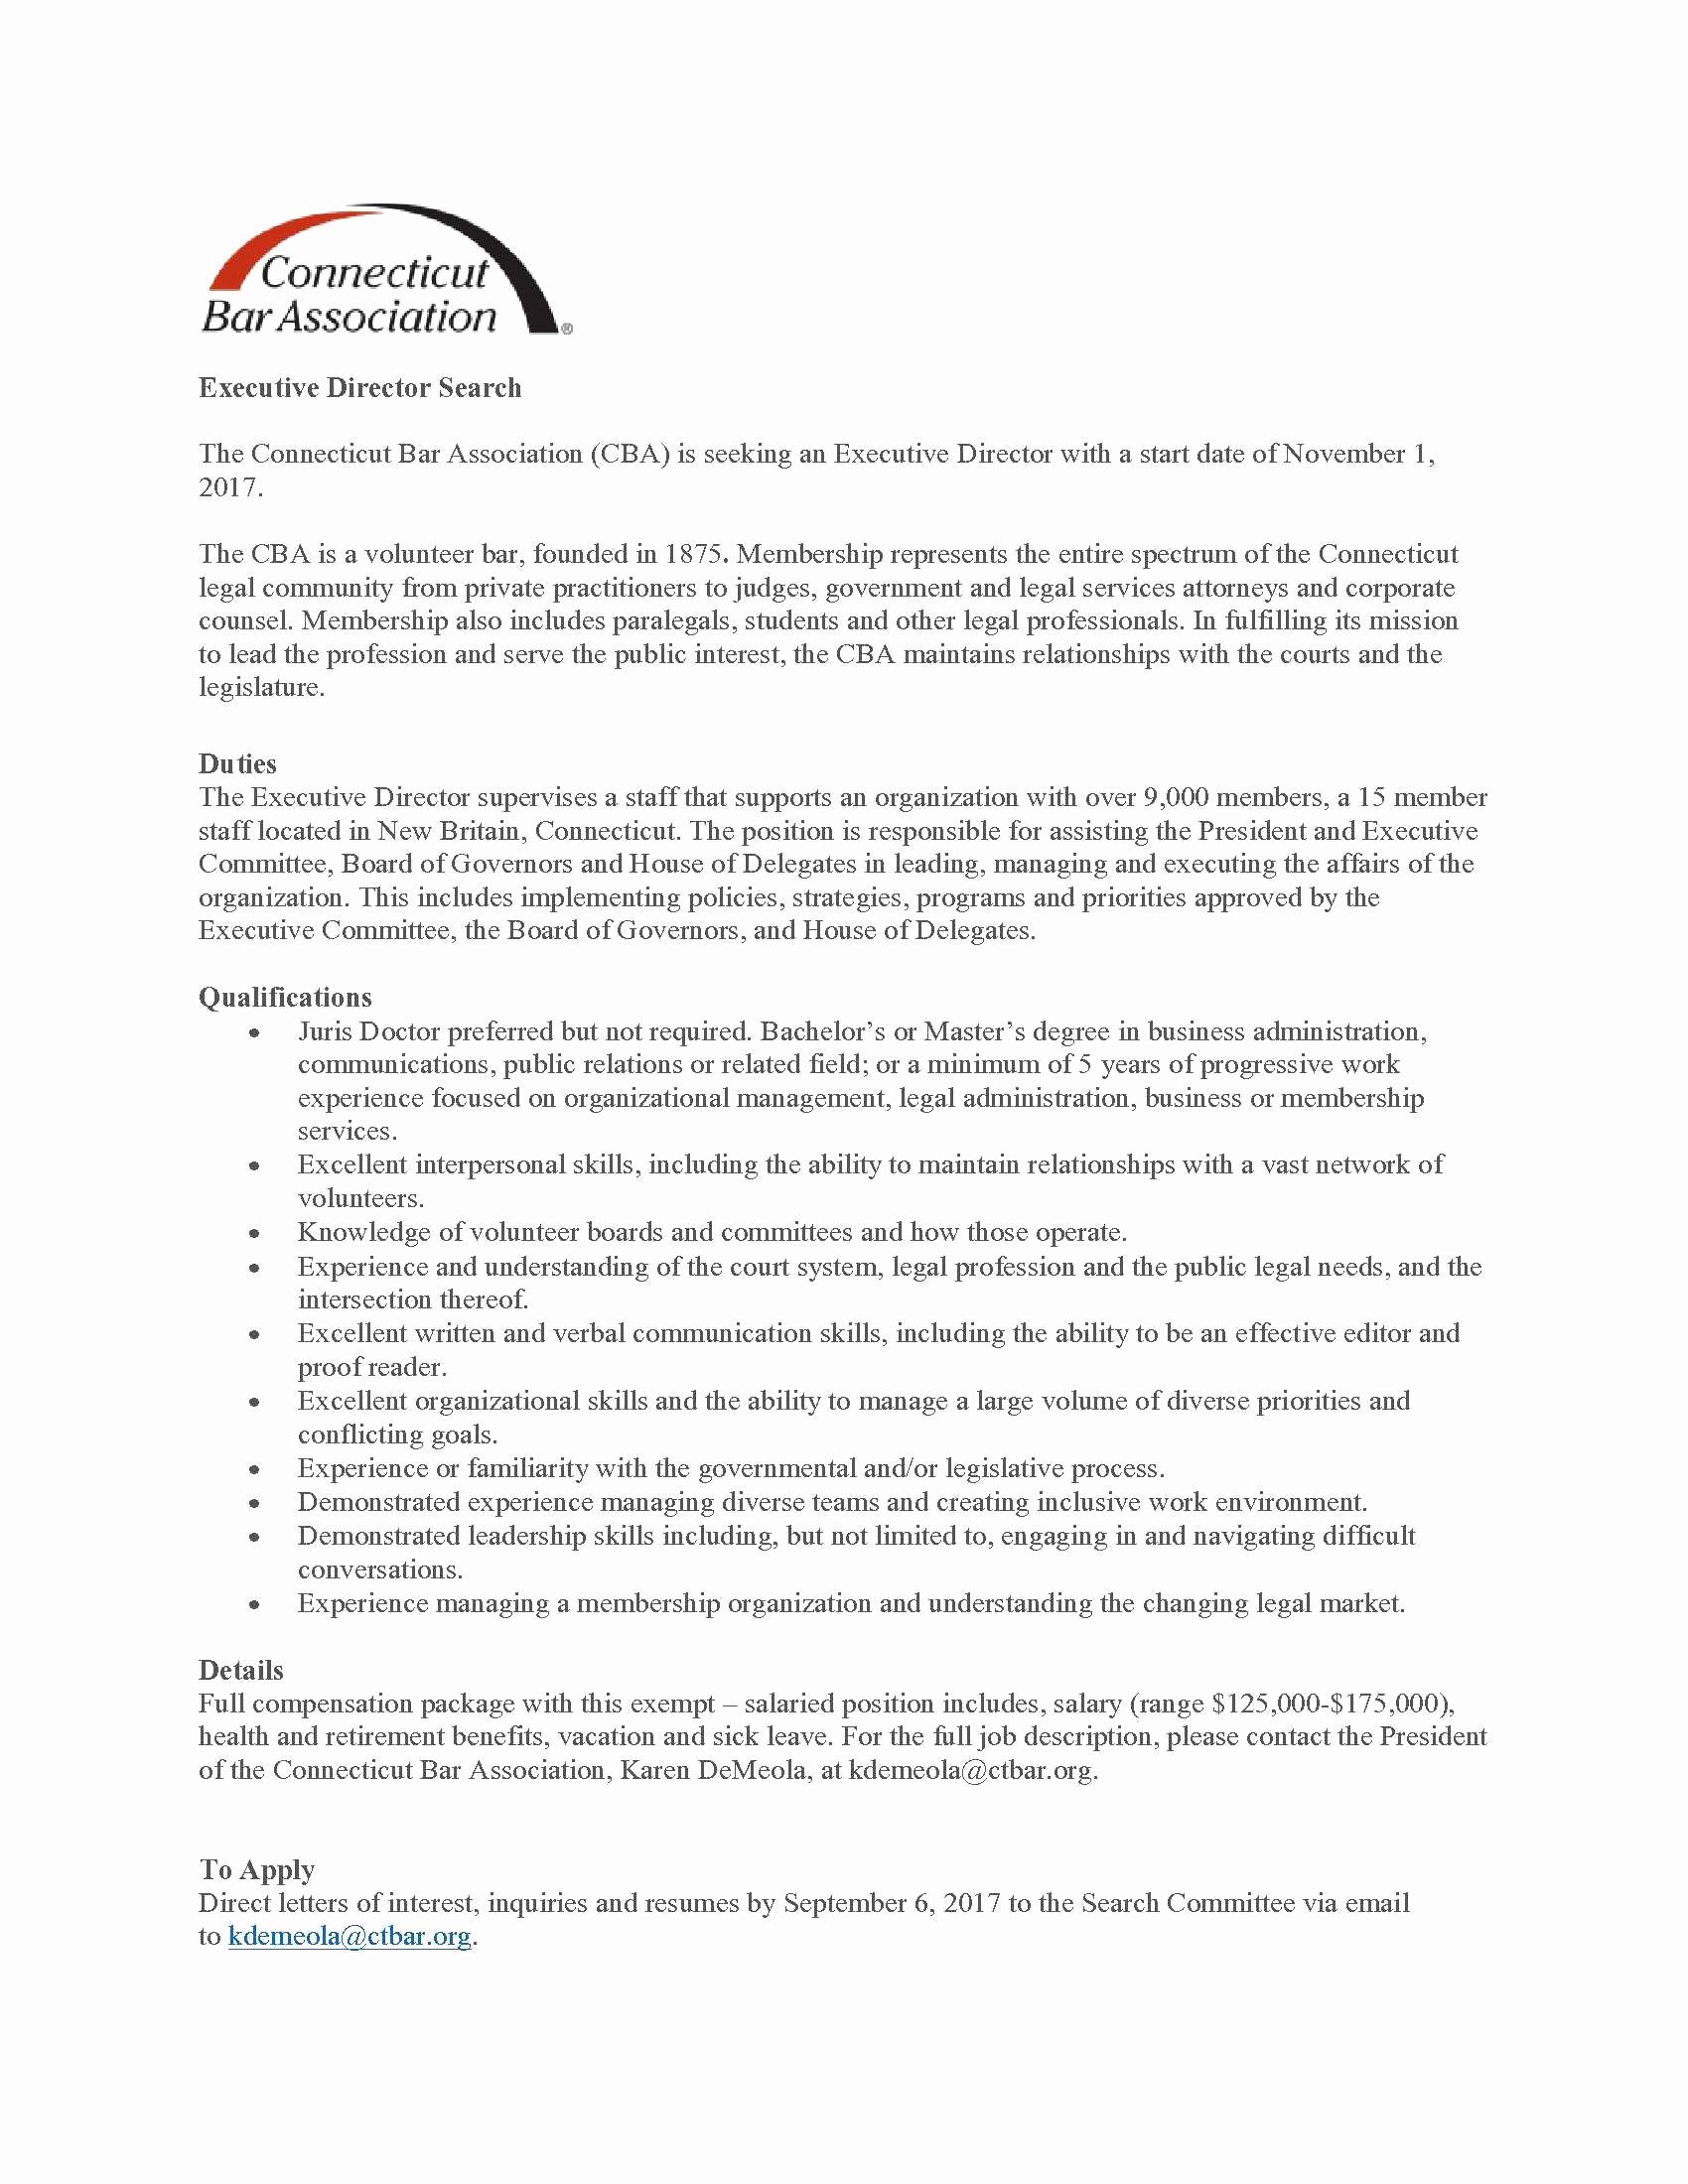 Non Profit Cover Letter Sample For Organization Ukranpoomarco